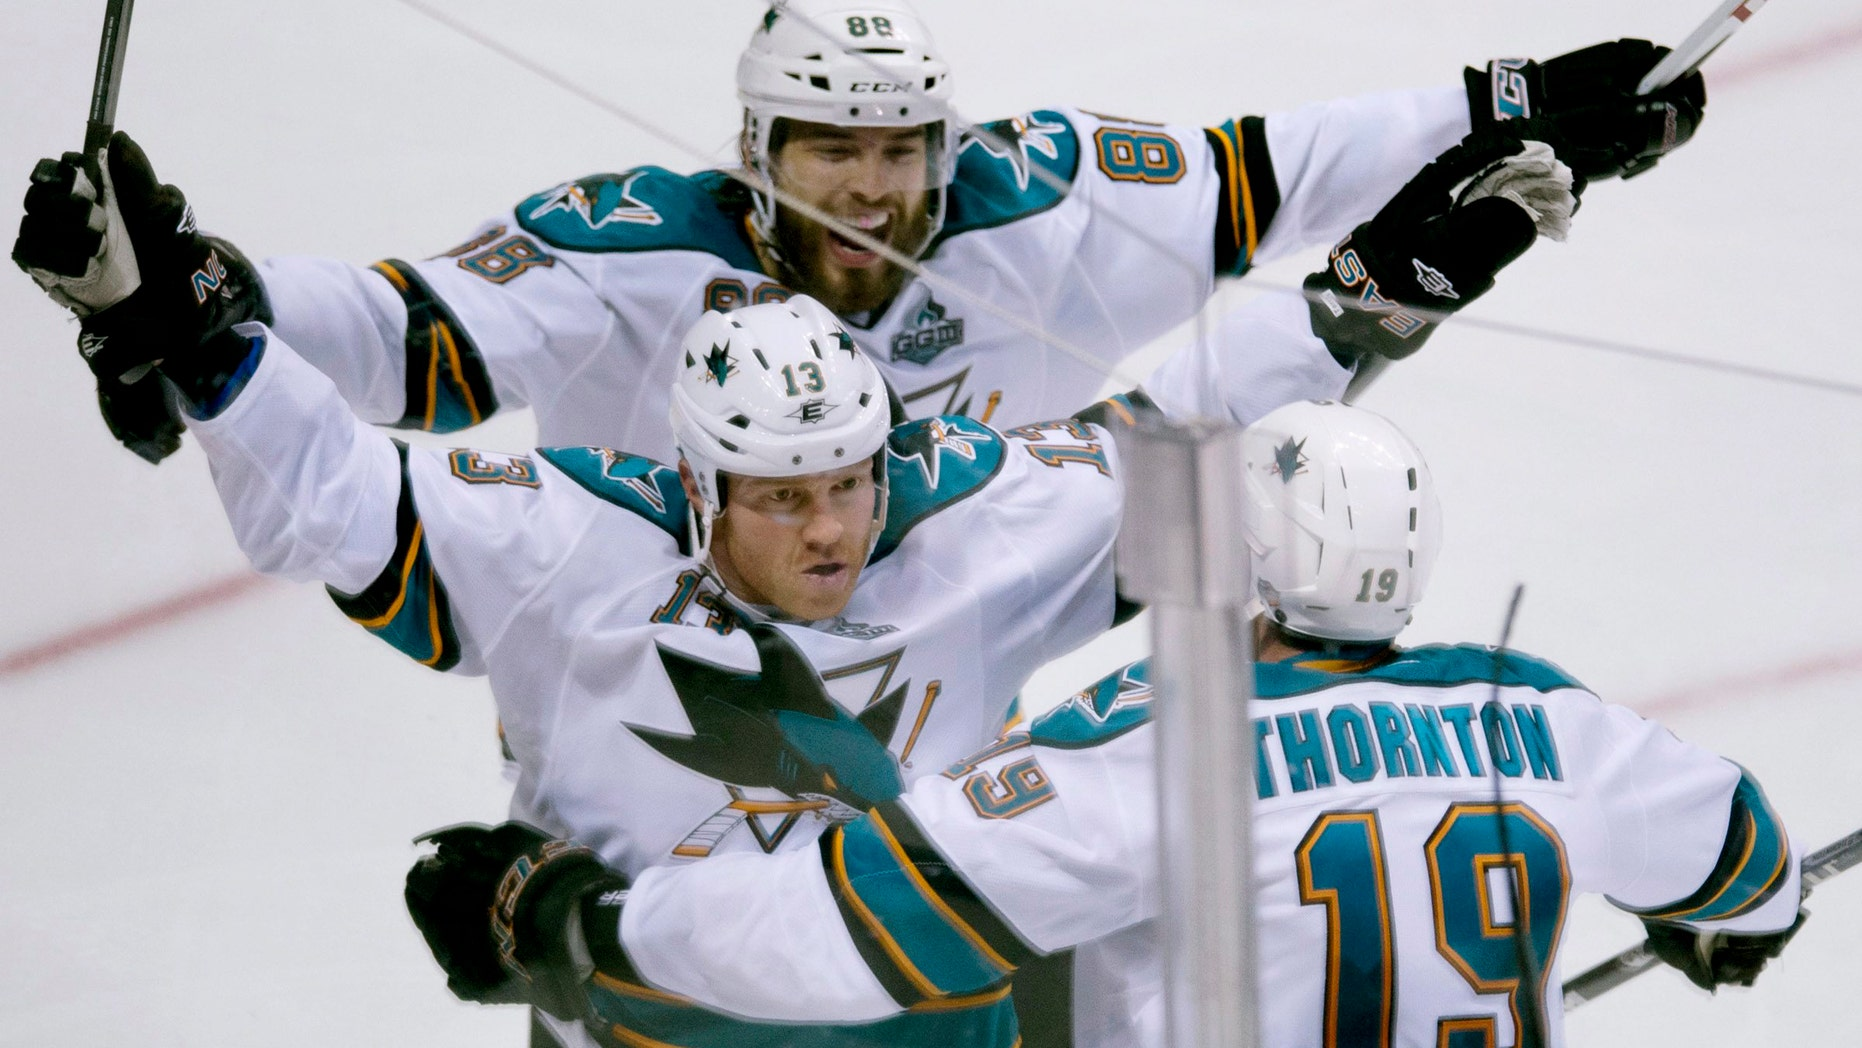 San Jose Sharks Raffi Torres (13) celebrates his game winning goal over the Vancouver Canucks with San Jose Sharks Joe Thornton (19) and Brent Burns (88) on Friday, May 3, 2013.